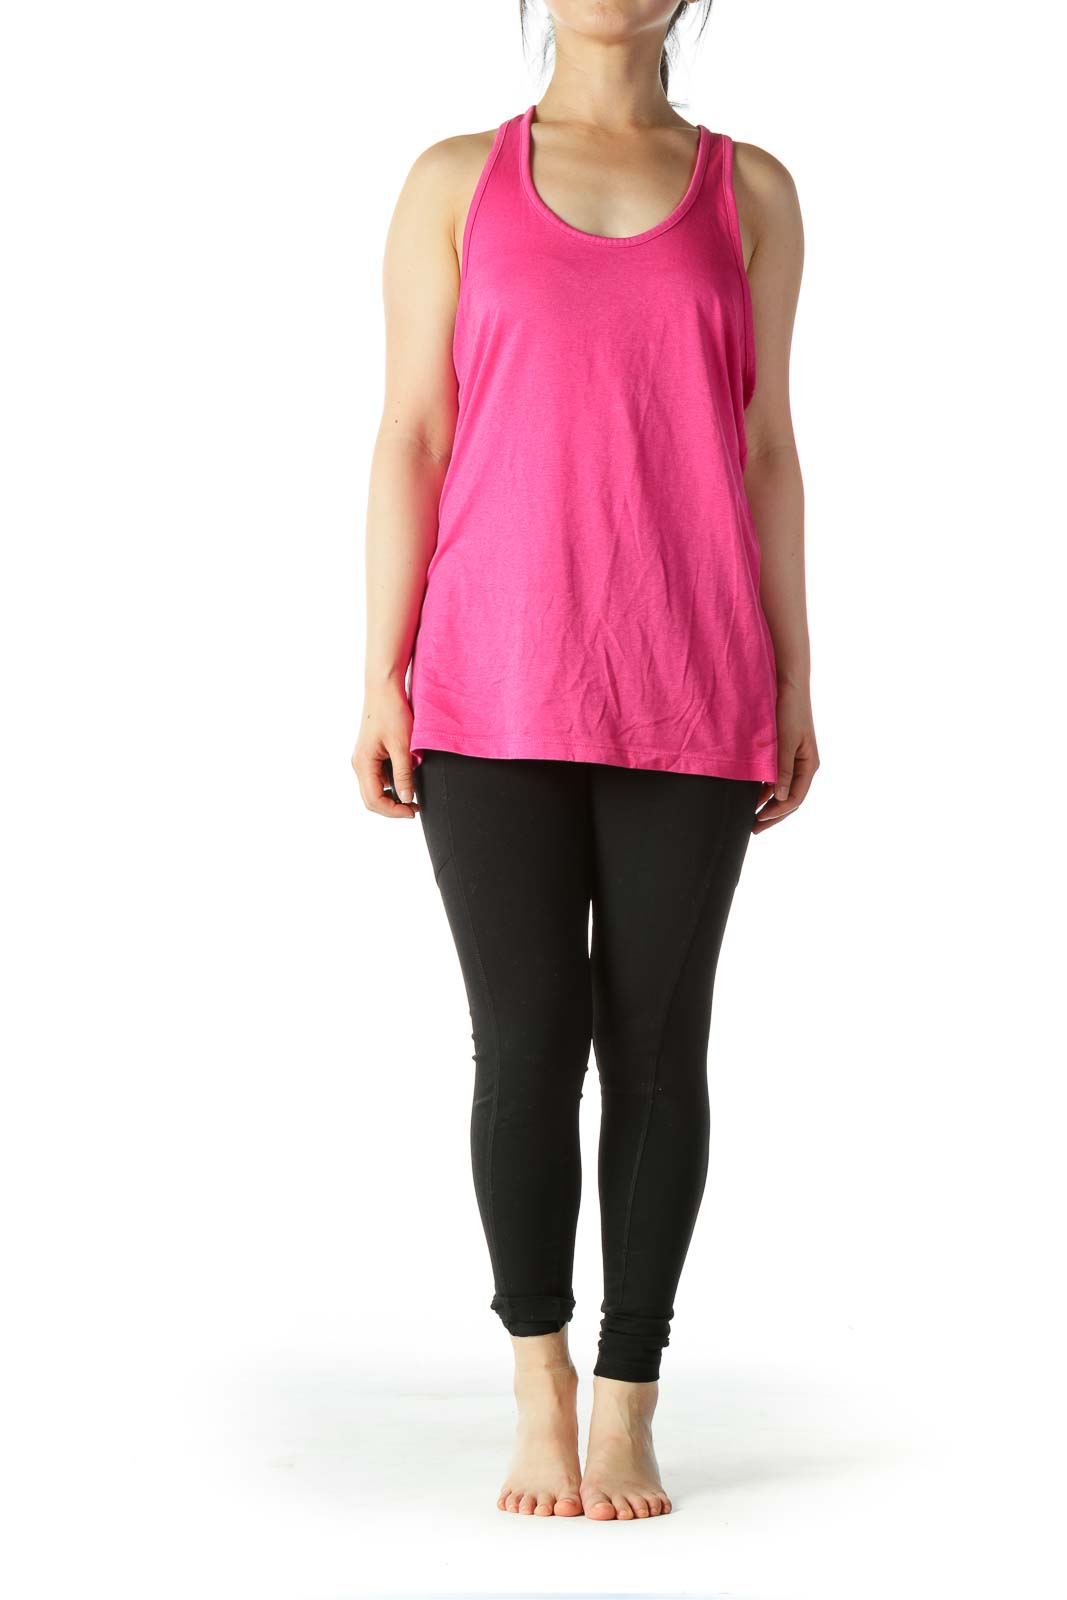 Pink Racerback Sleeveless Stretch Sports Top